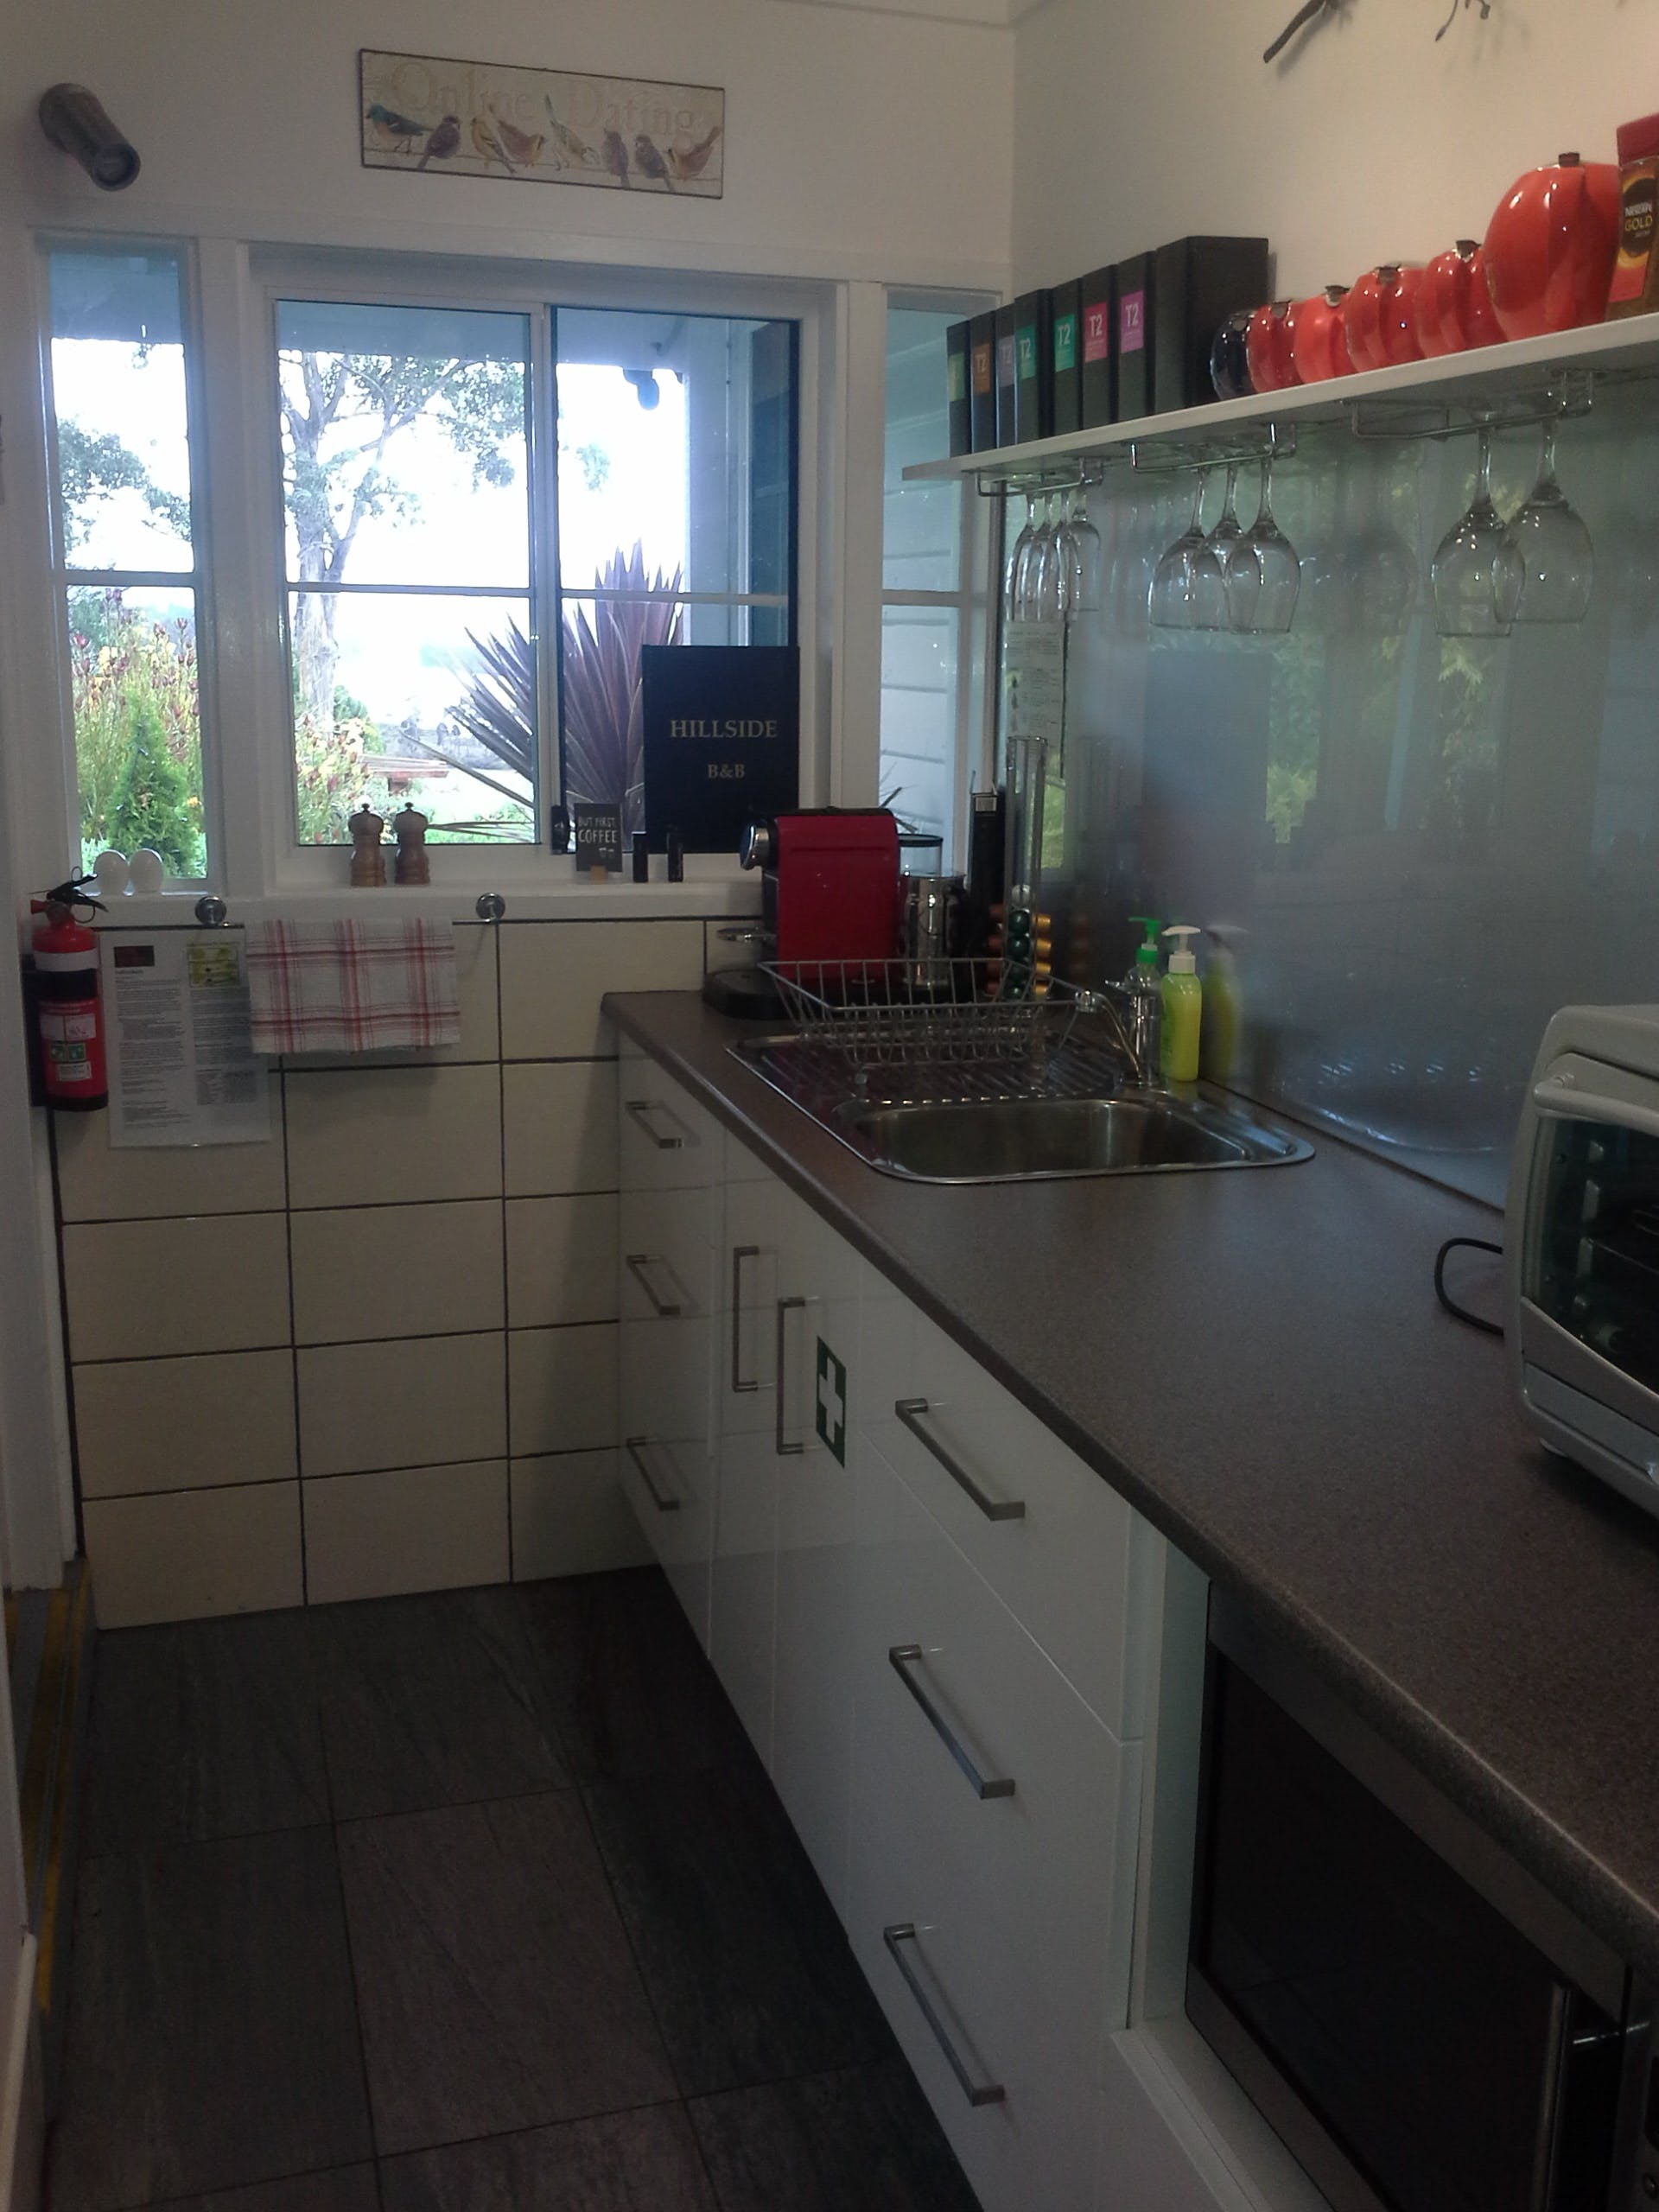 Garden Room Kitchenette